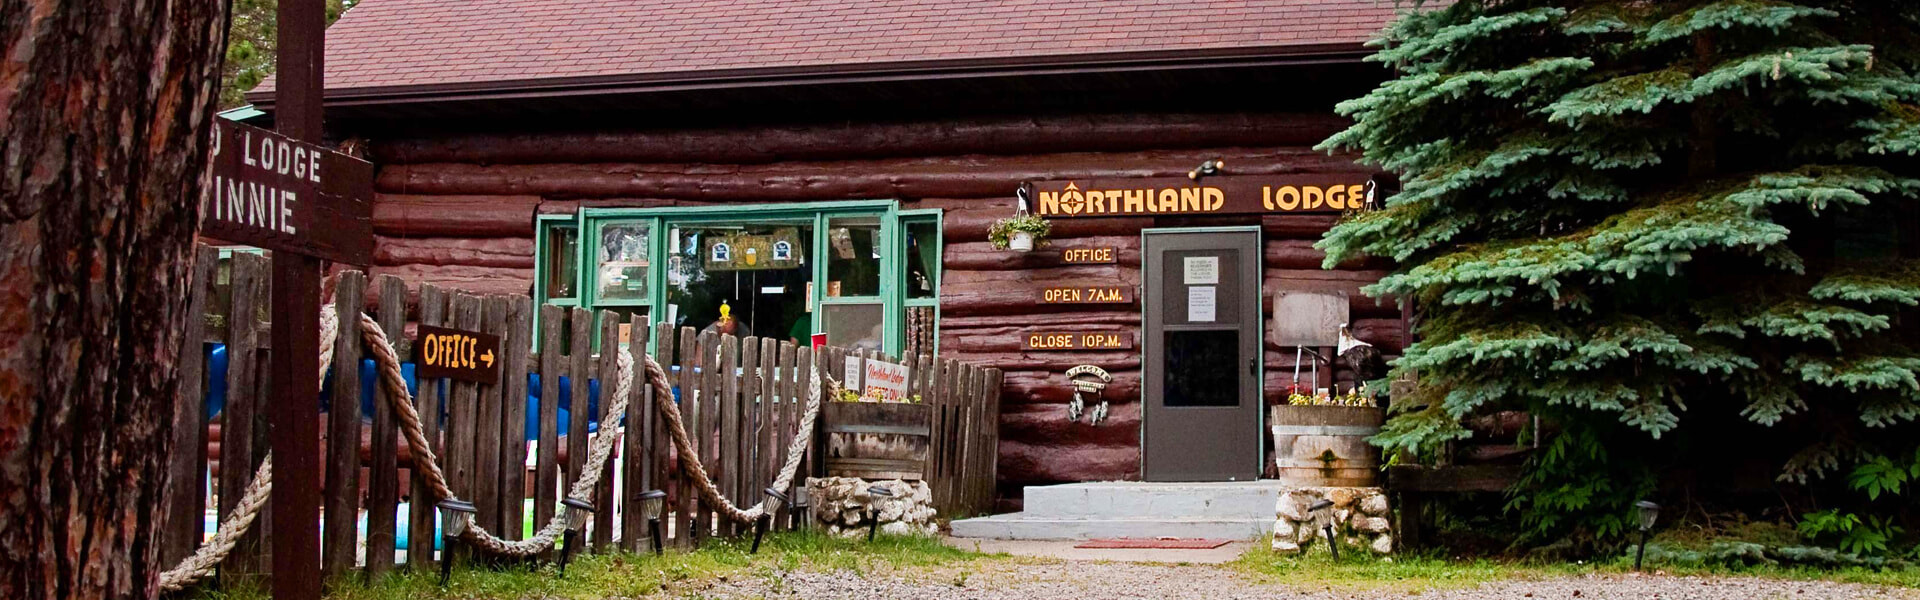 Things to Do - Northland Lodge Resort & Campground on Lake